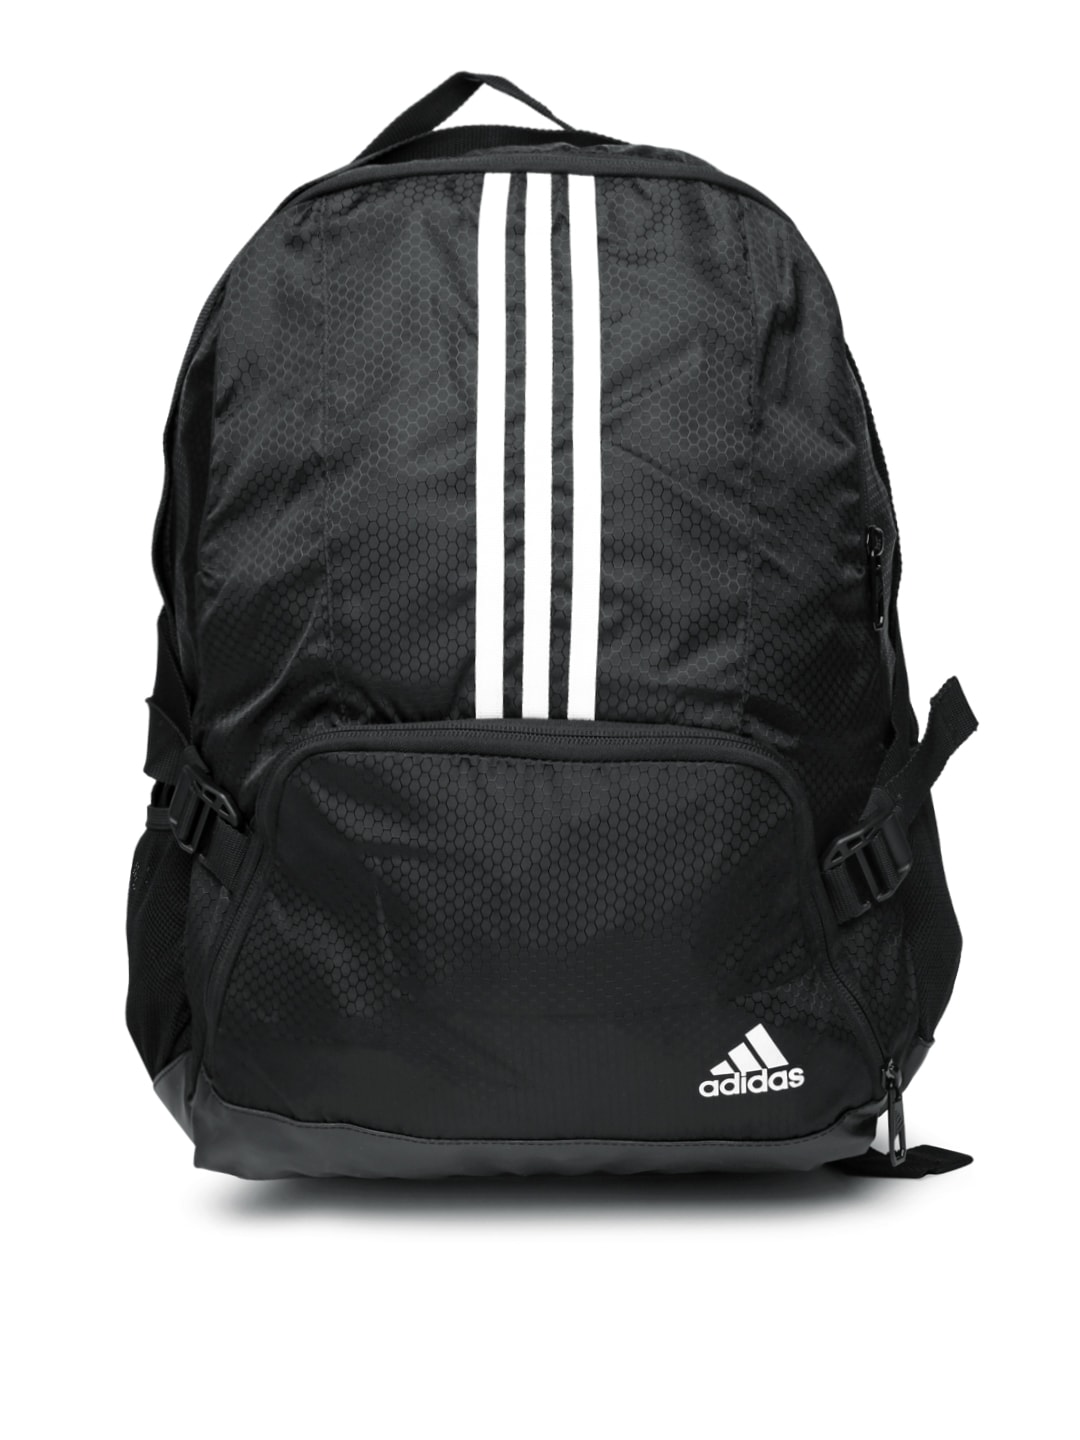 4ebf4d5721 Adidas m67828 Unisex Black Backpack - Best Price in India